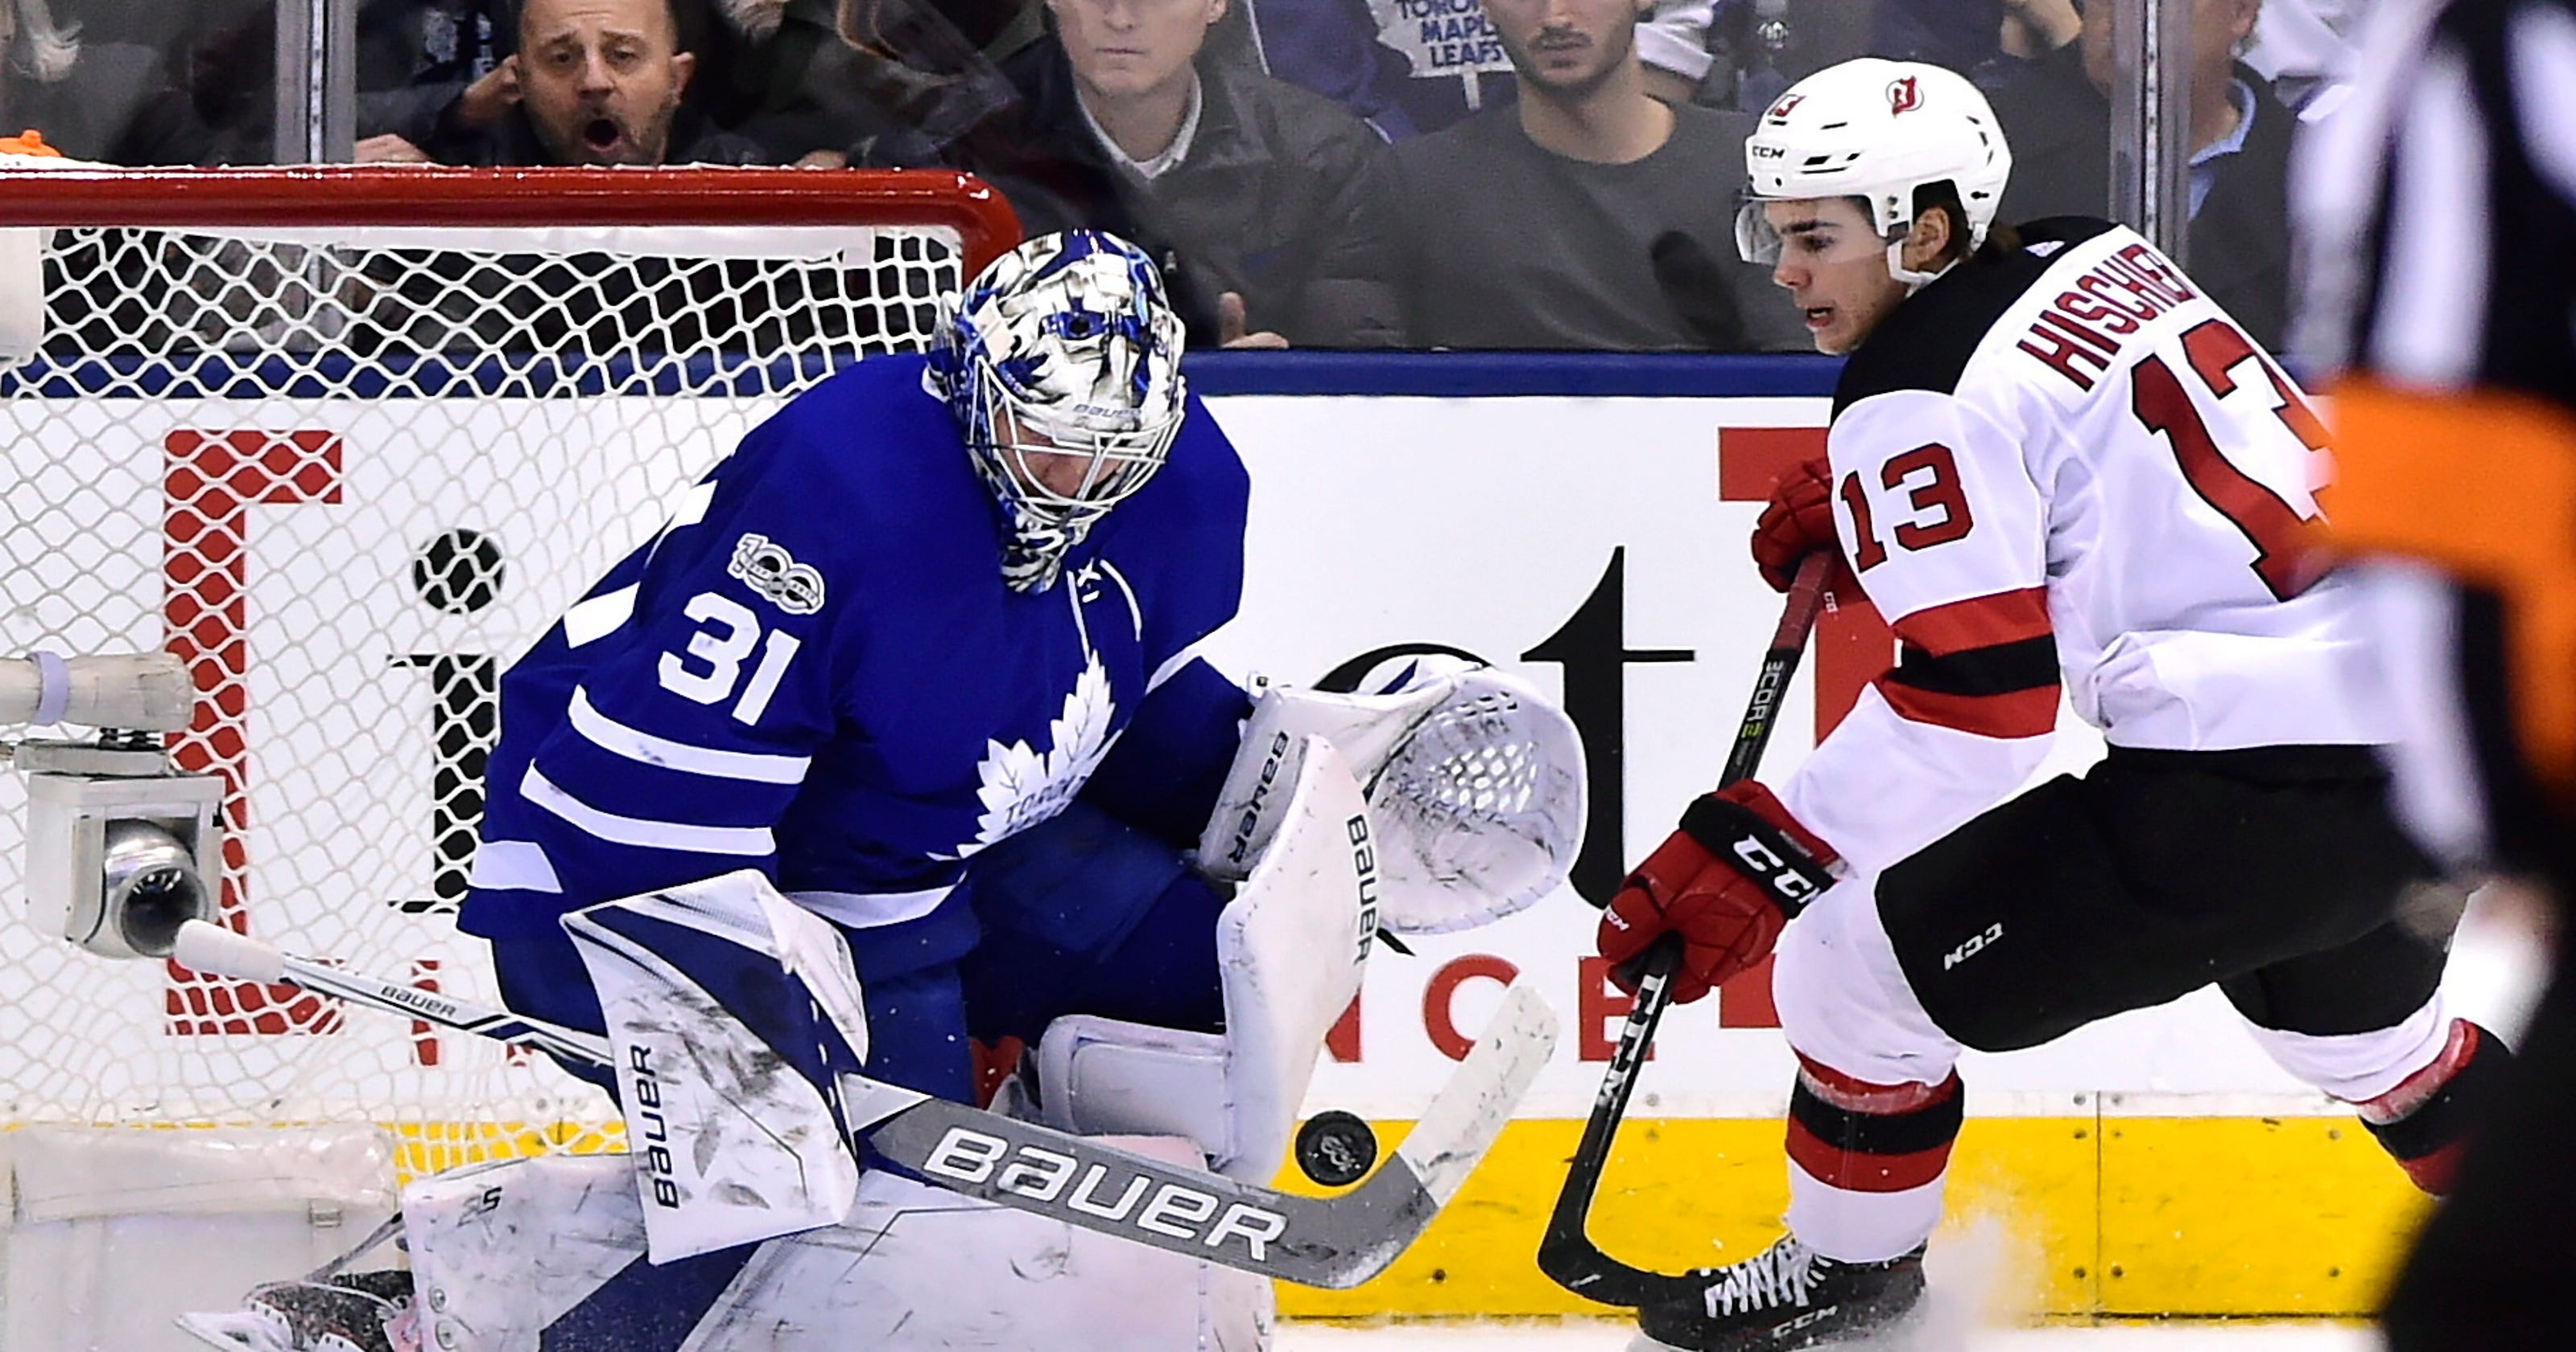 New Jersey Devils fall 1-0 to Toronto Maple Leafs in overtime 838cc7ab0